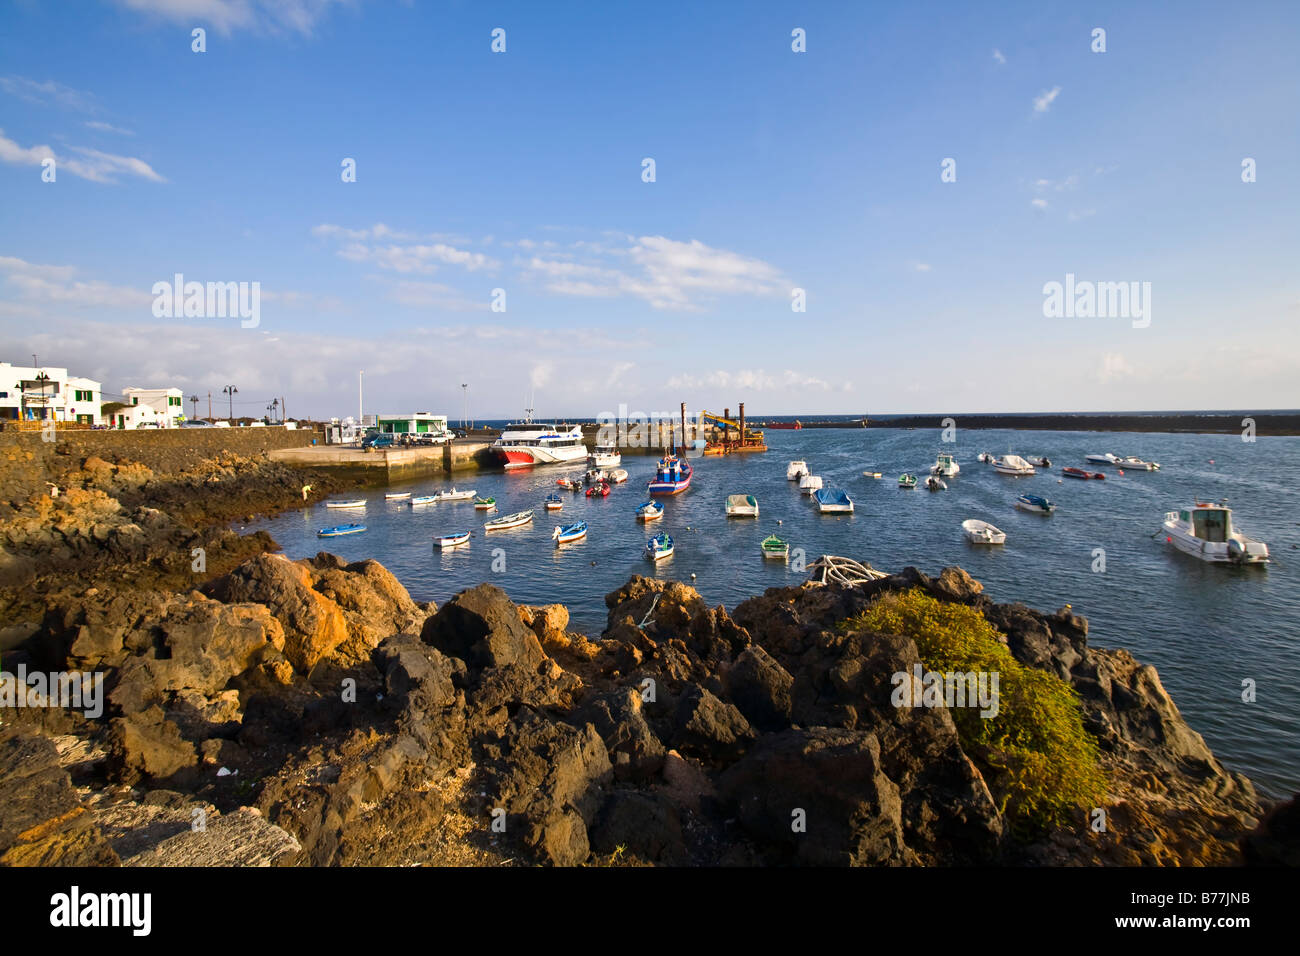 Orzola harbour harbor port ships boats ferry fishing lanzarote canaries canary islands spain europe travel tourism - Stock Image